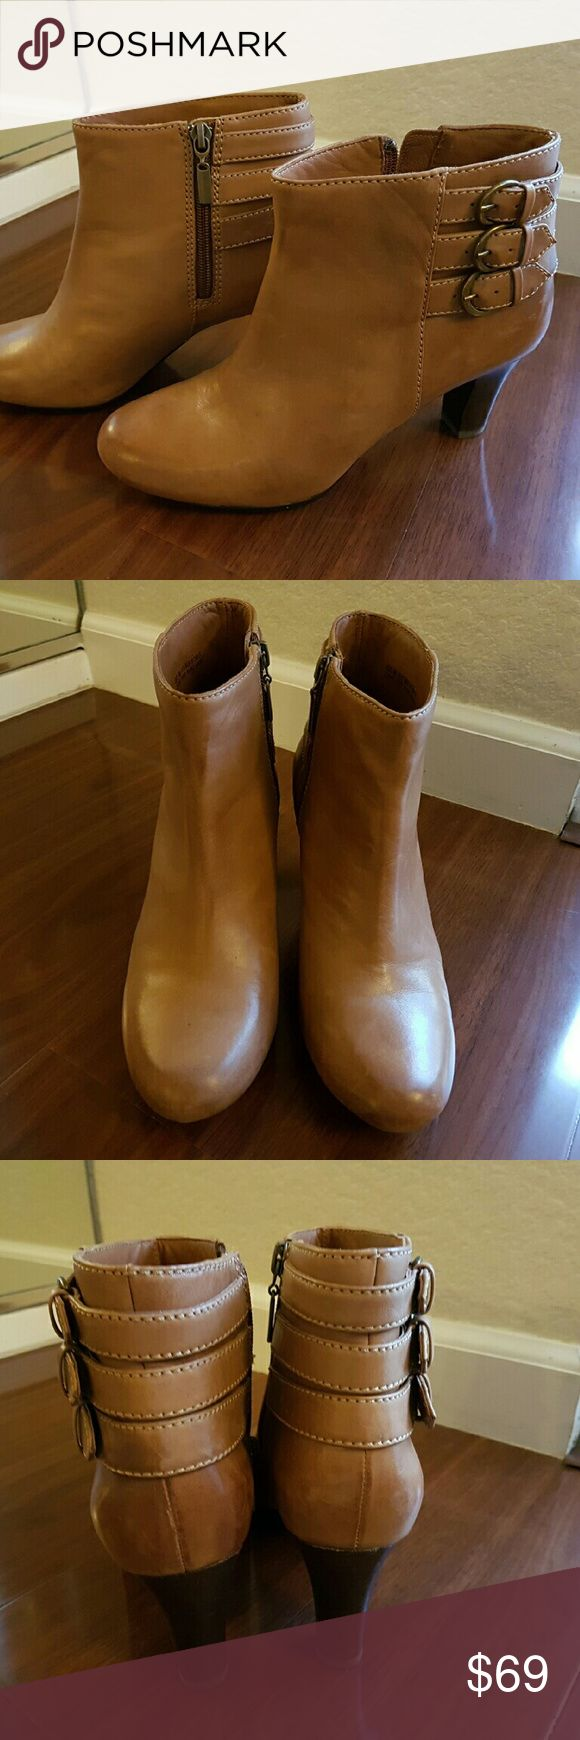 Clarks Artisan tan leather ankle boots In very good condition. Soft and comfortable. No trade. Clarks Shoes Ankle Boots & Booties